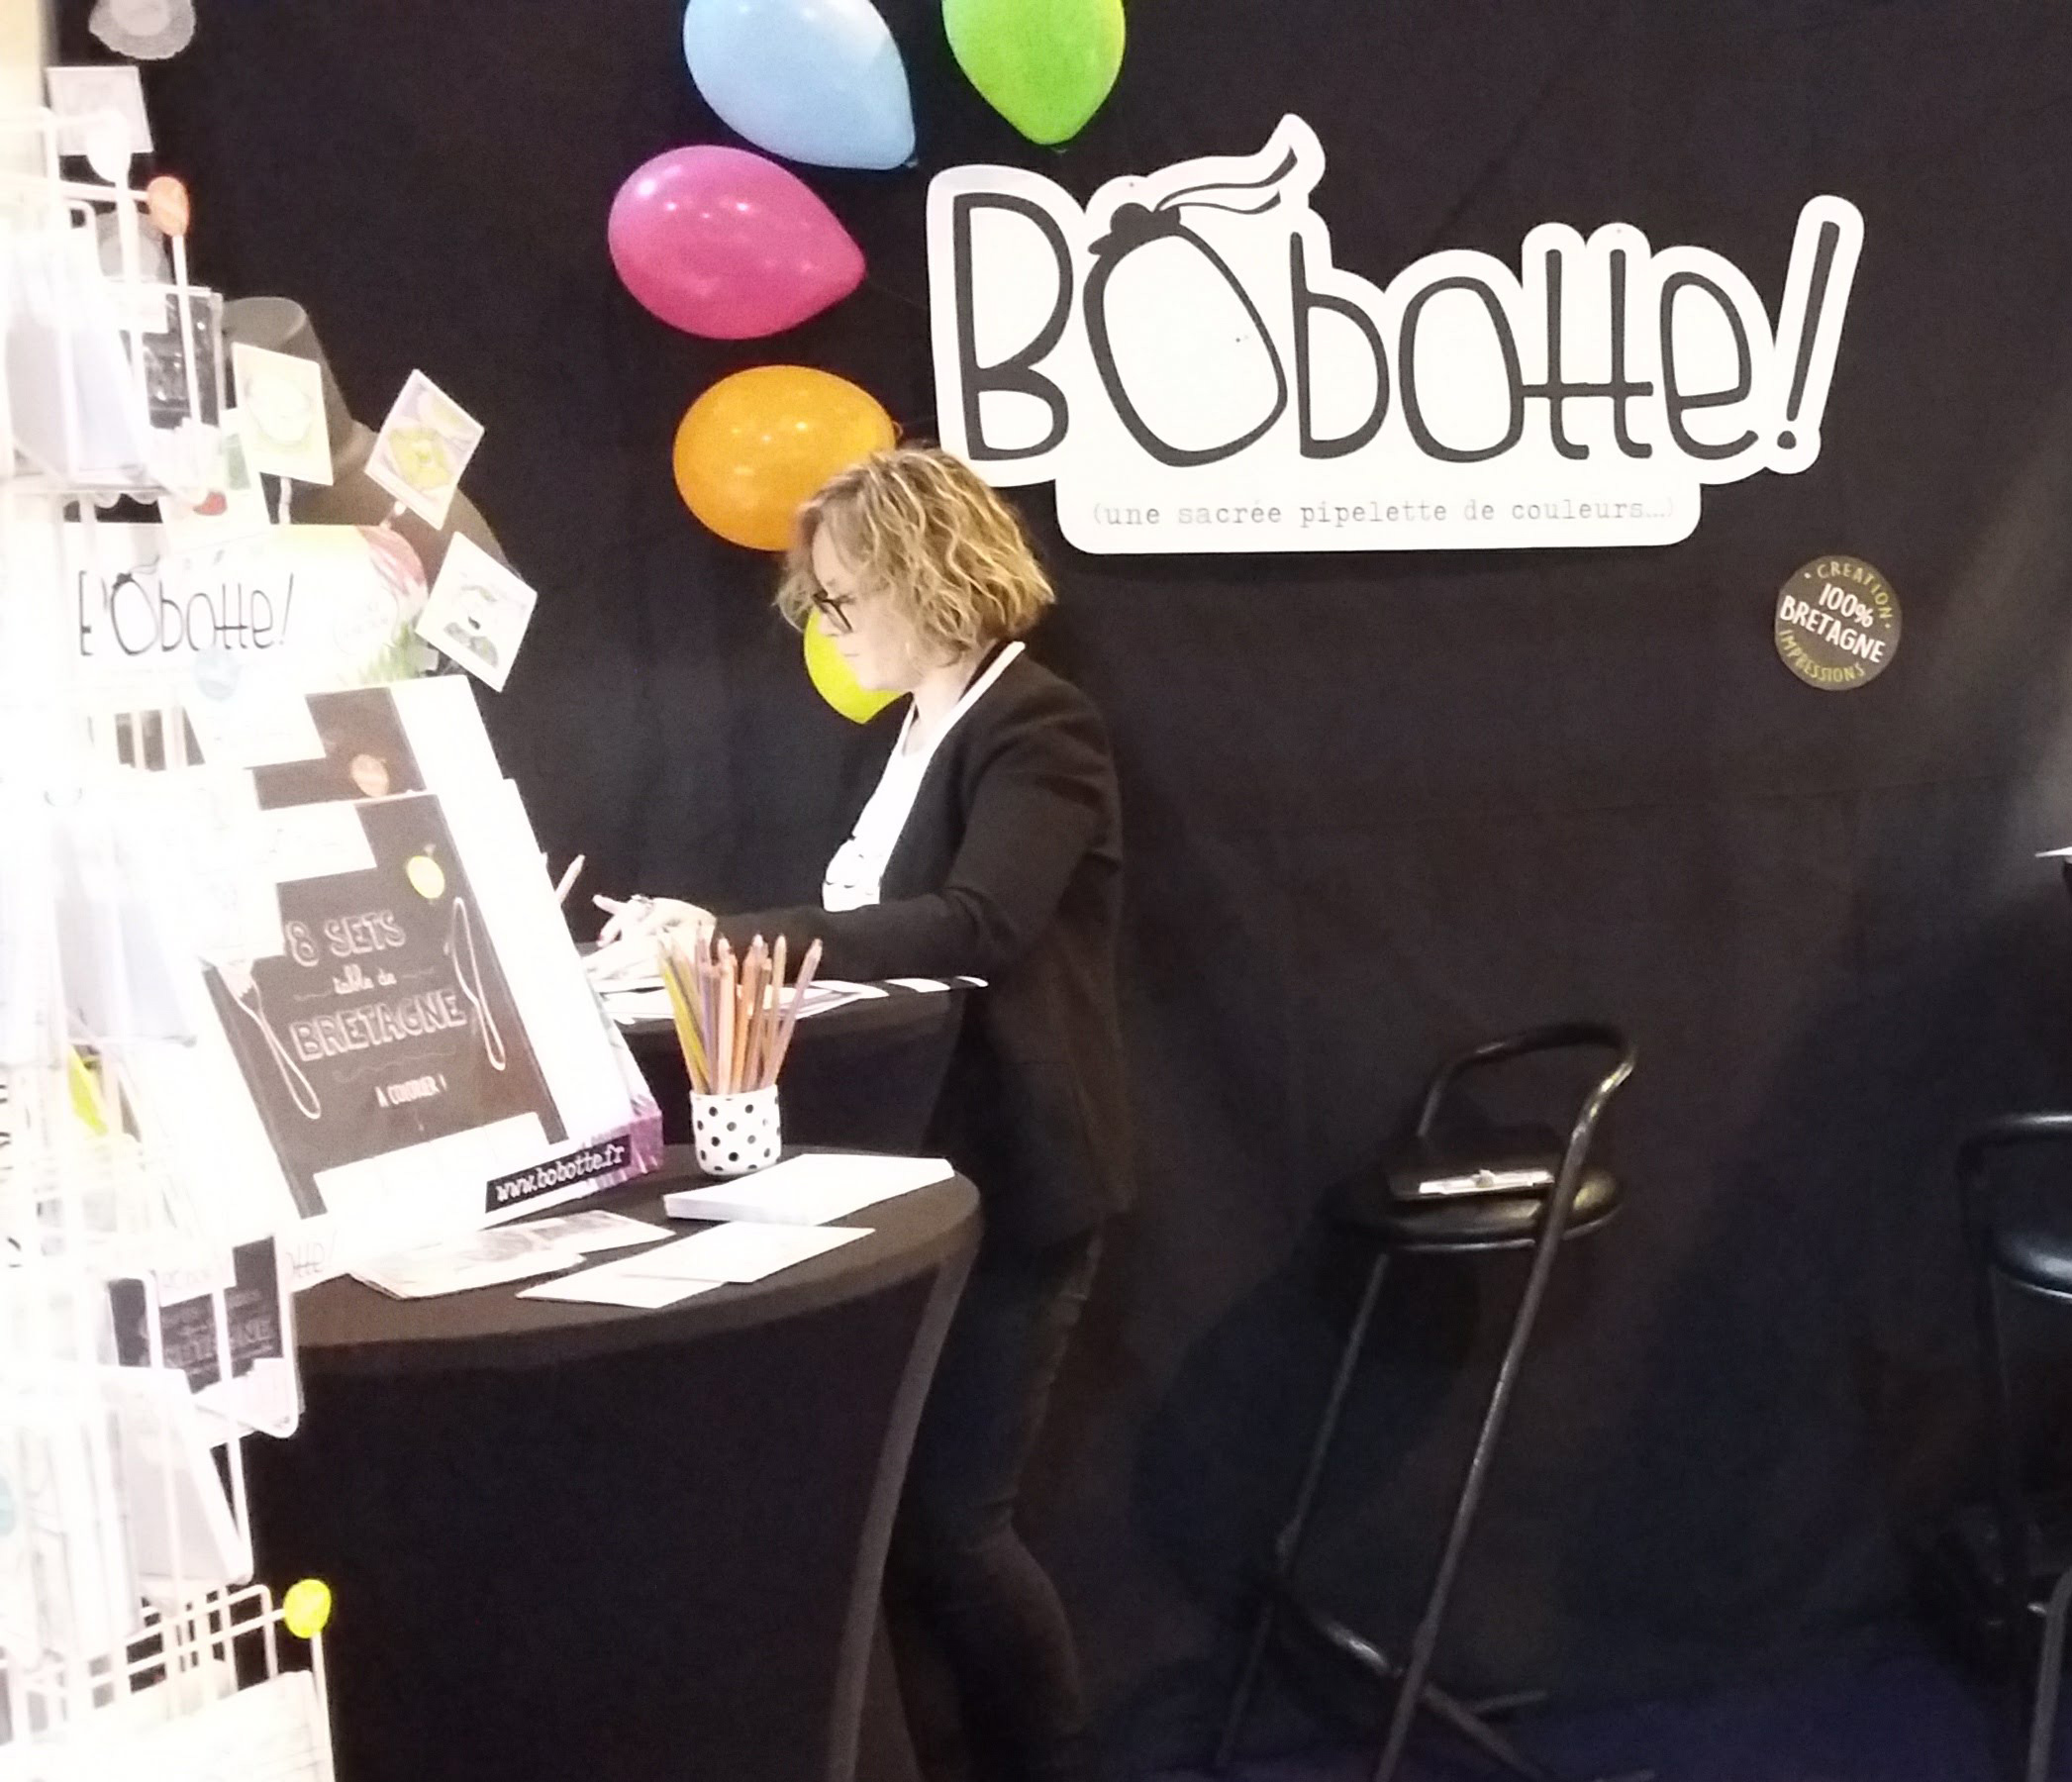 Bobotte au salon Hexagone à Rennes